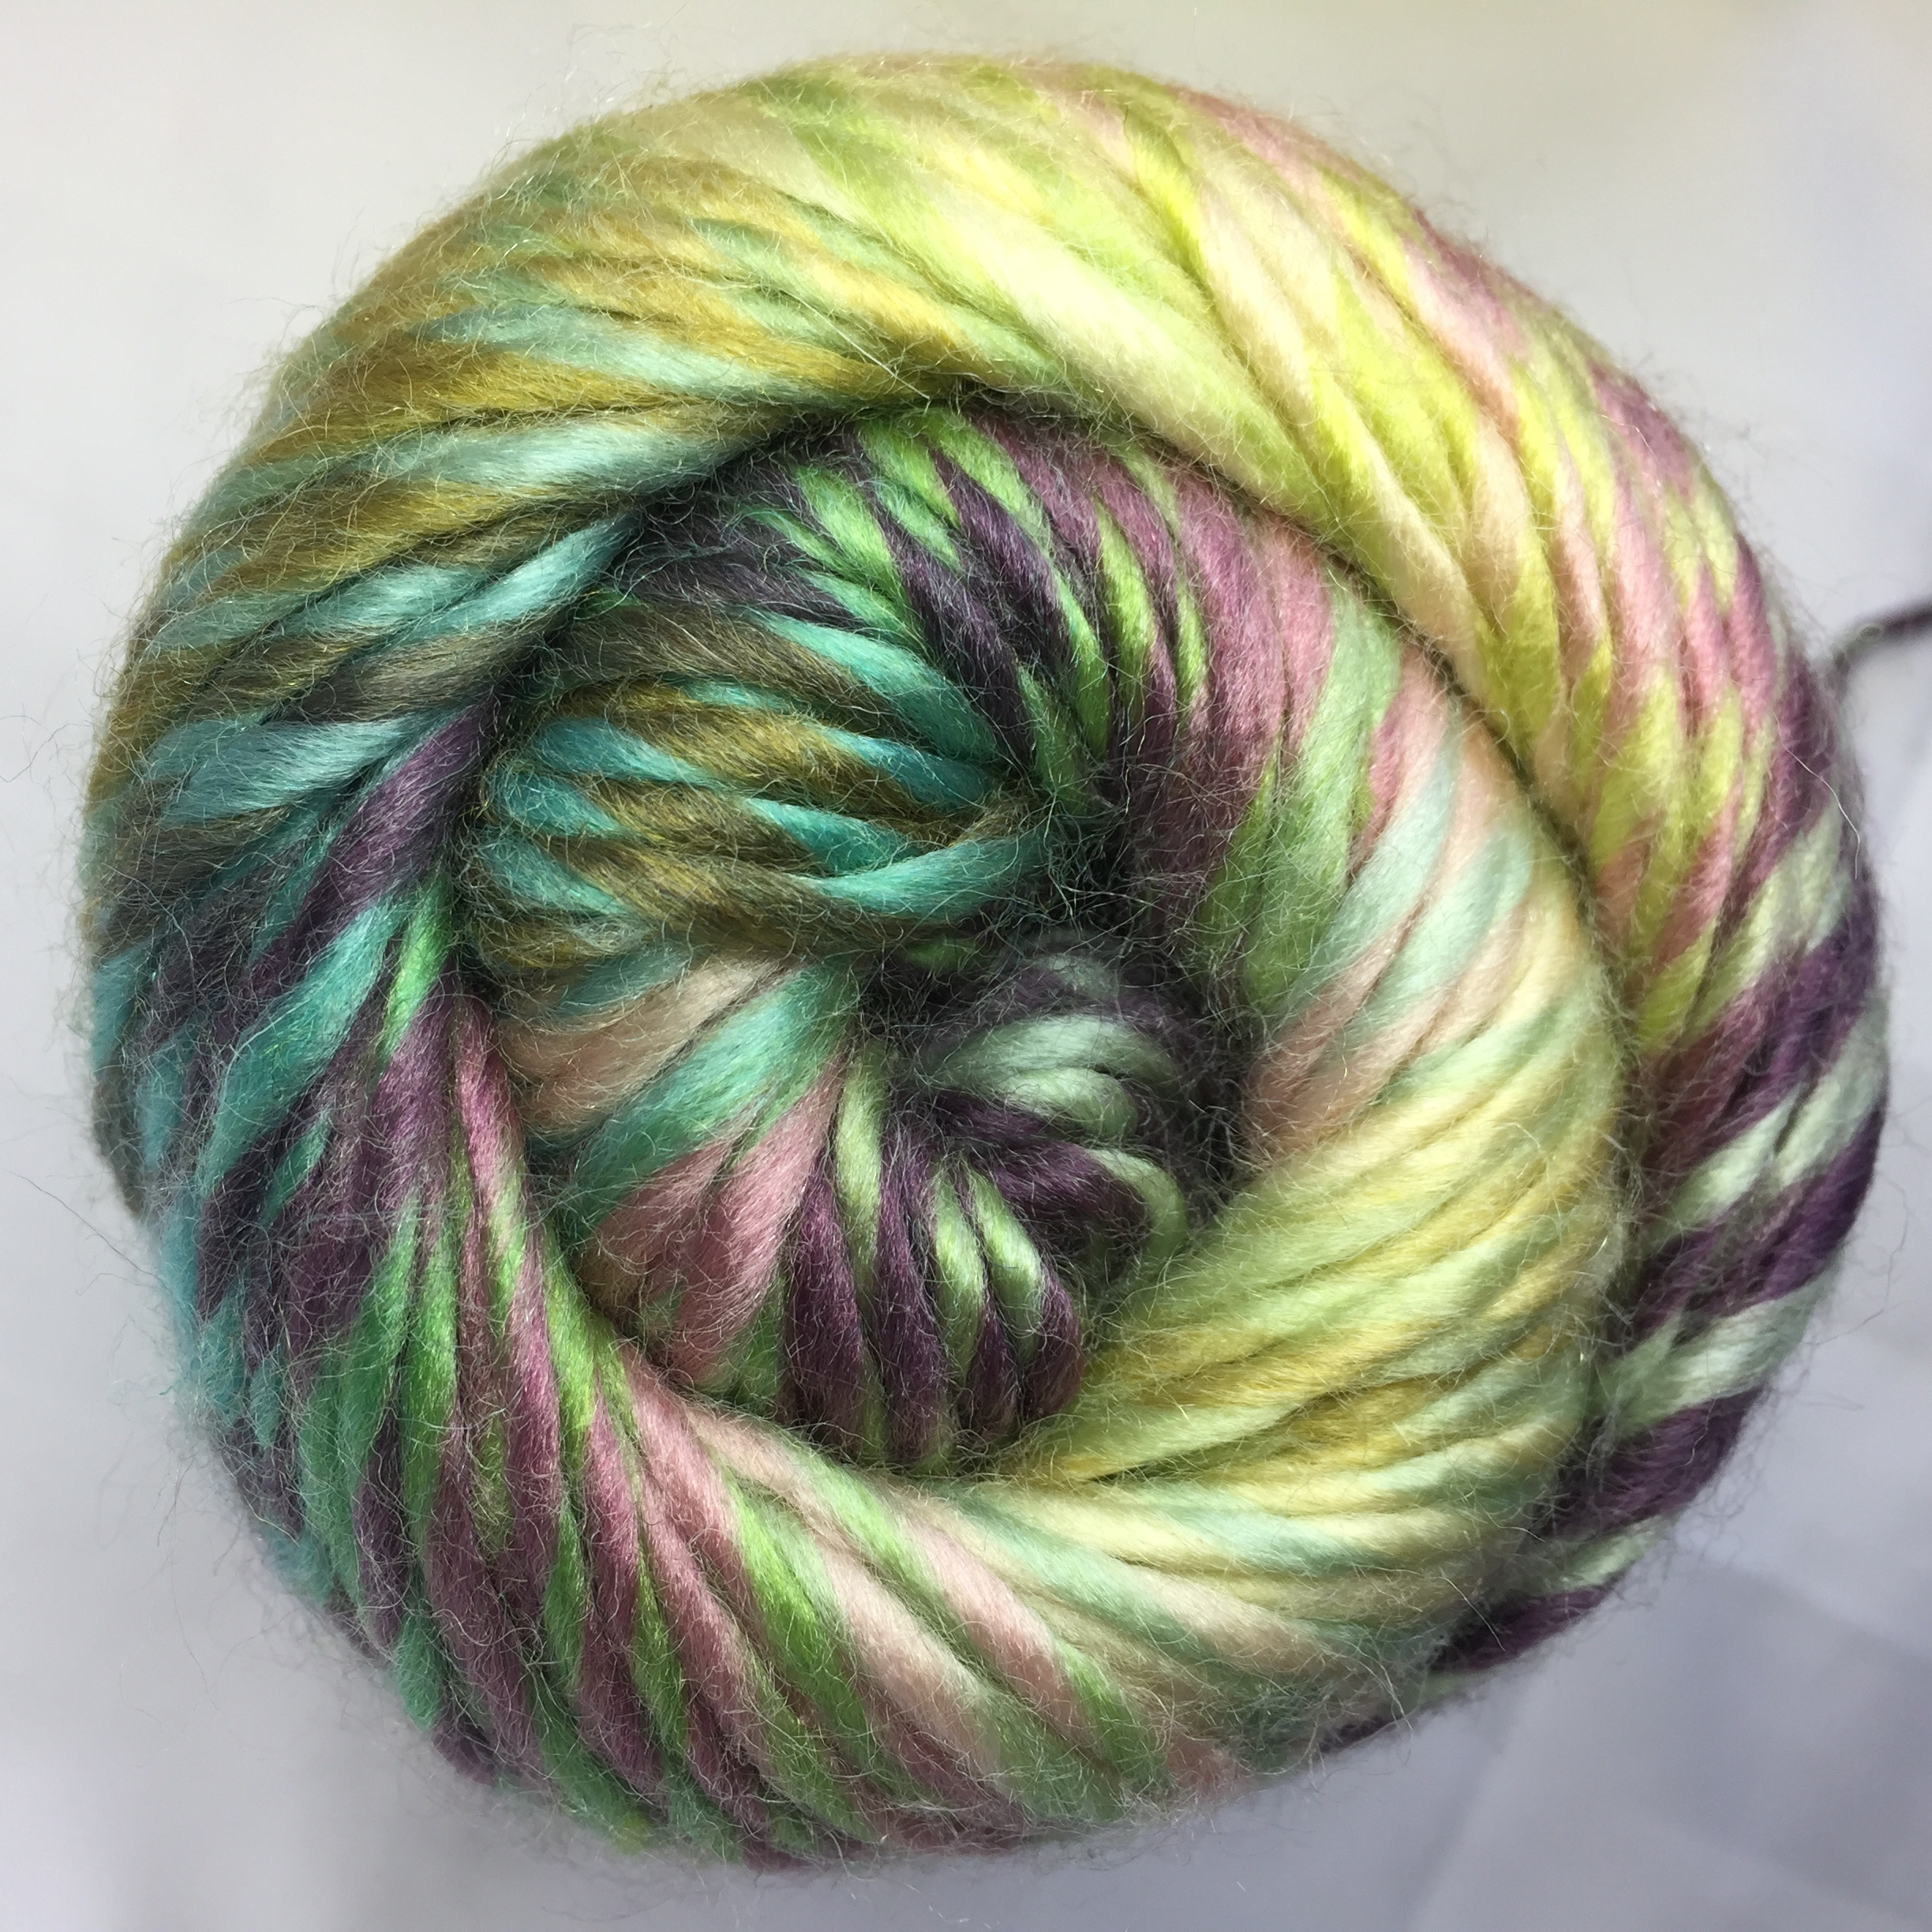 Handknitting Yarn, Fancy Yarn, Roving Yarn, Jd9418